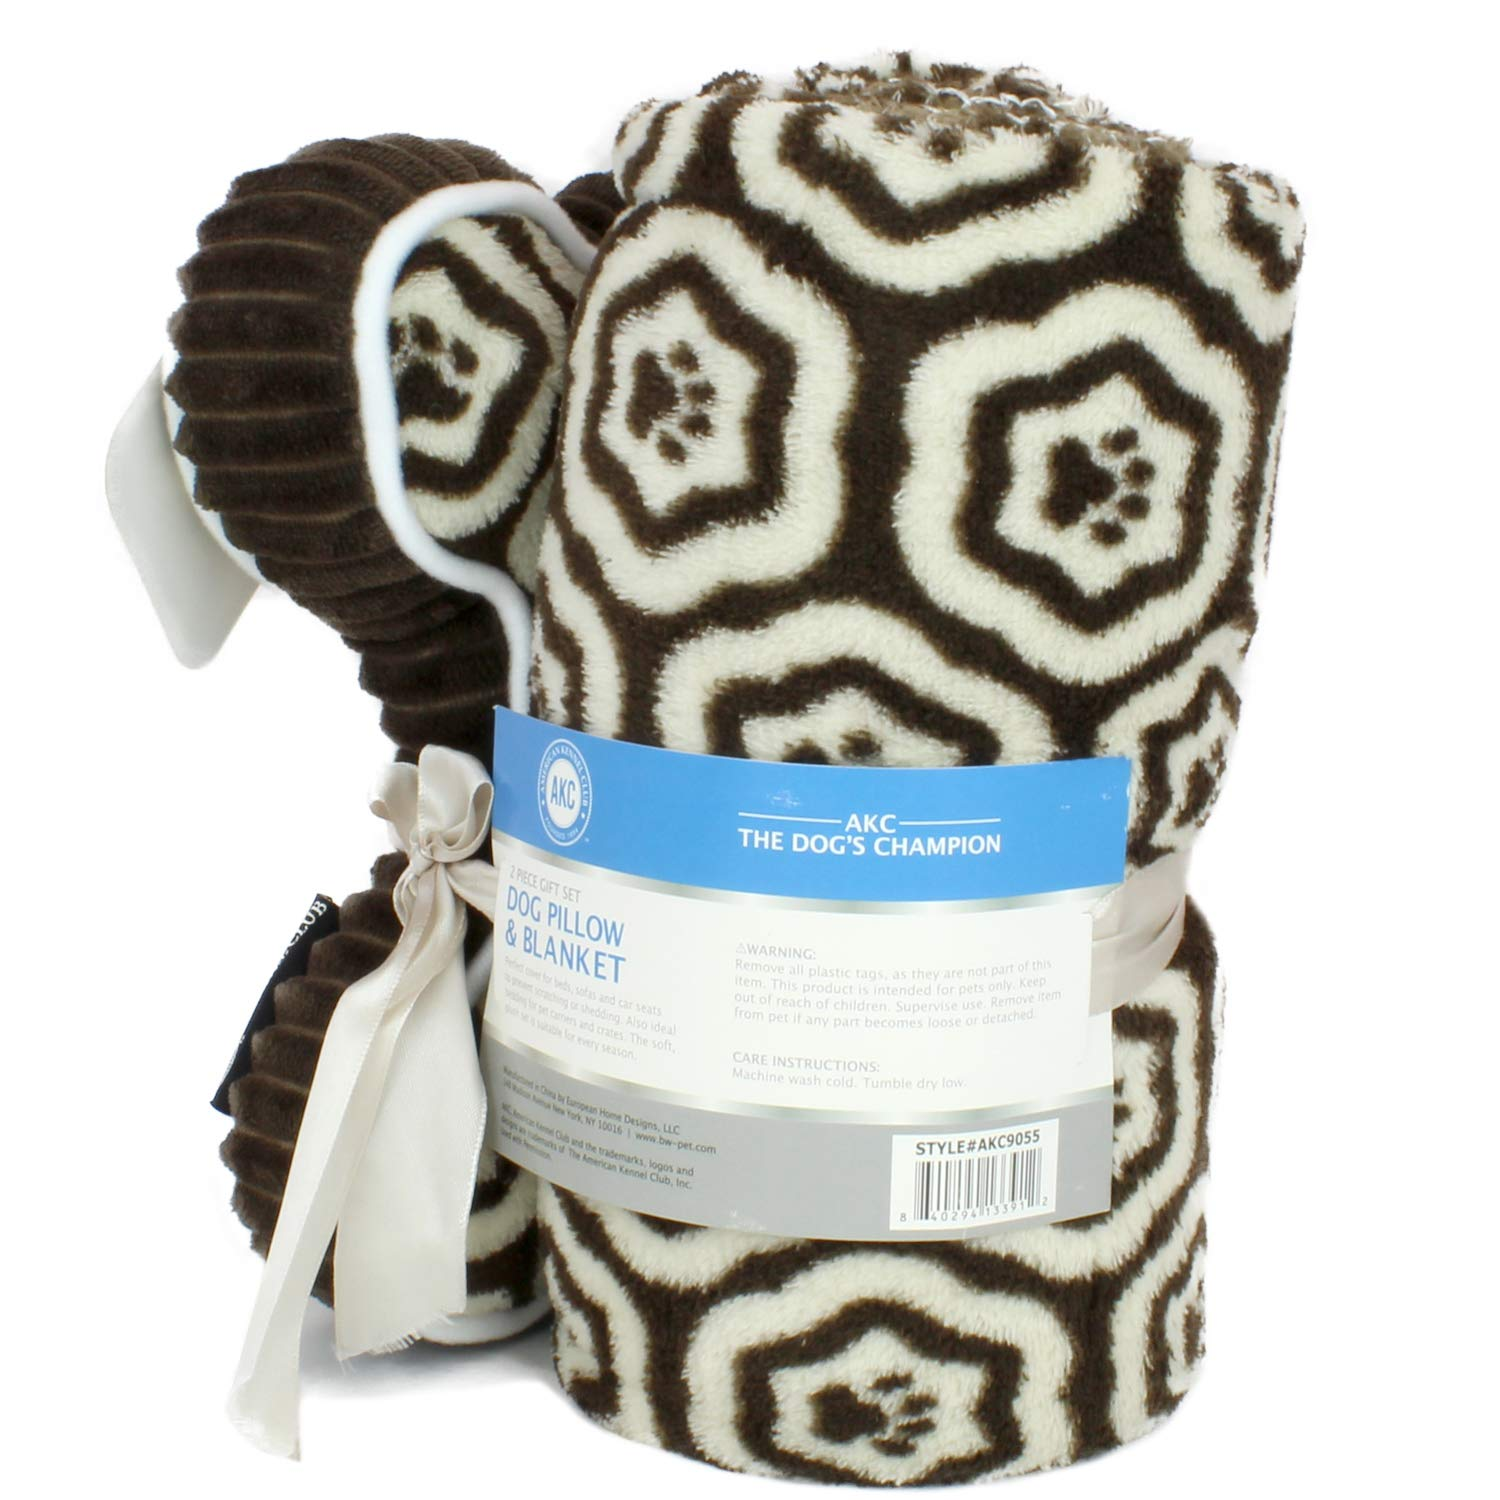 AKC Print Pet Blanket /& Pillow Gift Set 2 PC